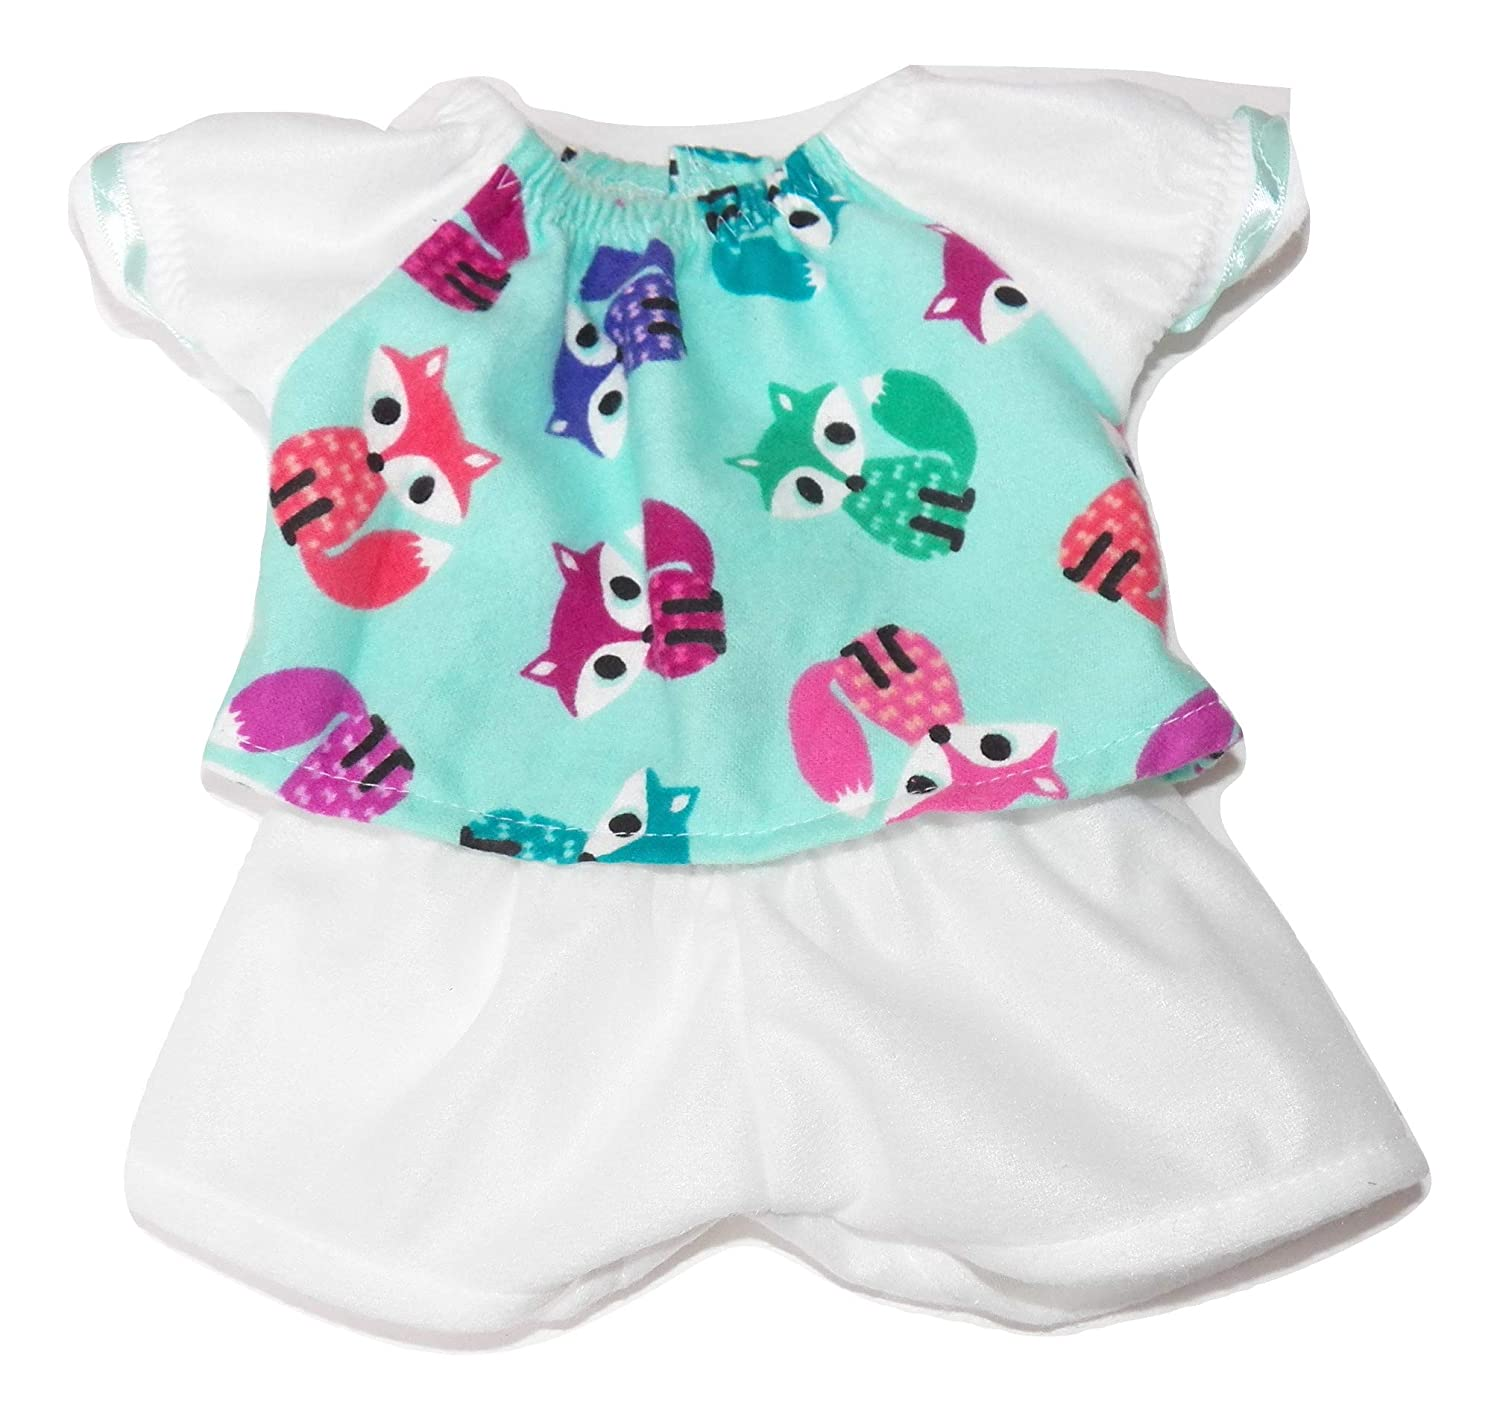 Cabbage Patch Doll Clothes Fits 14 Girl Includes One Fox Pj Top and Shorts